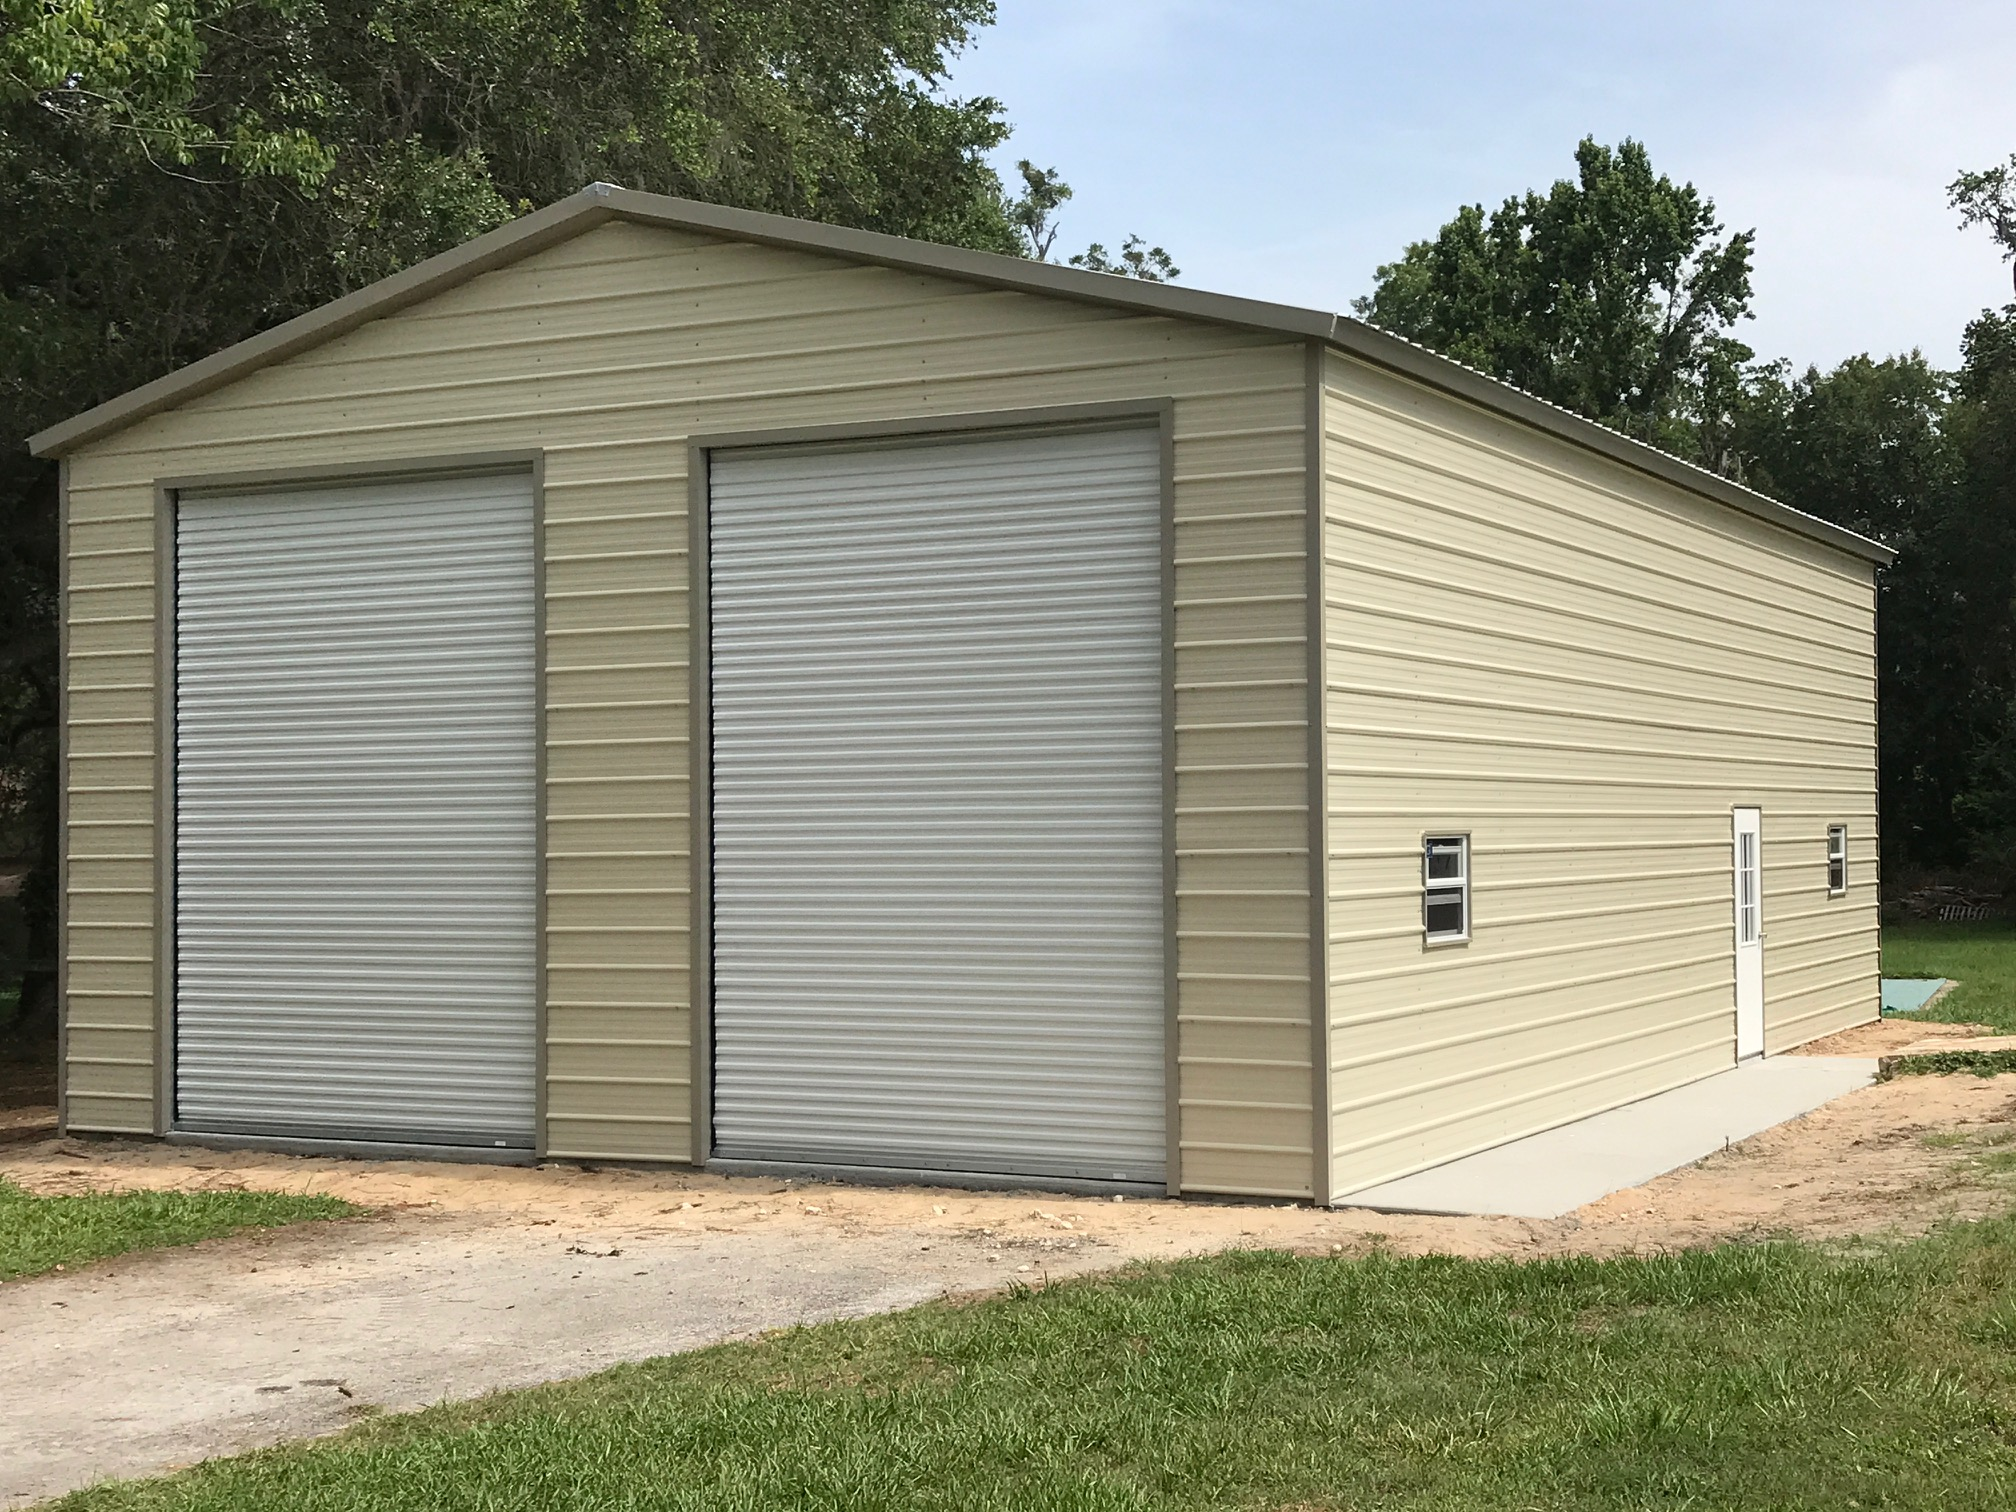 30x35 Garage Central Florida Steel Buildings And Supply